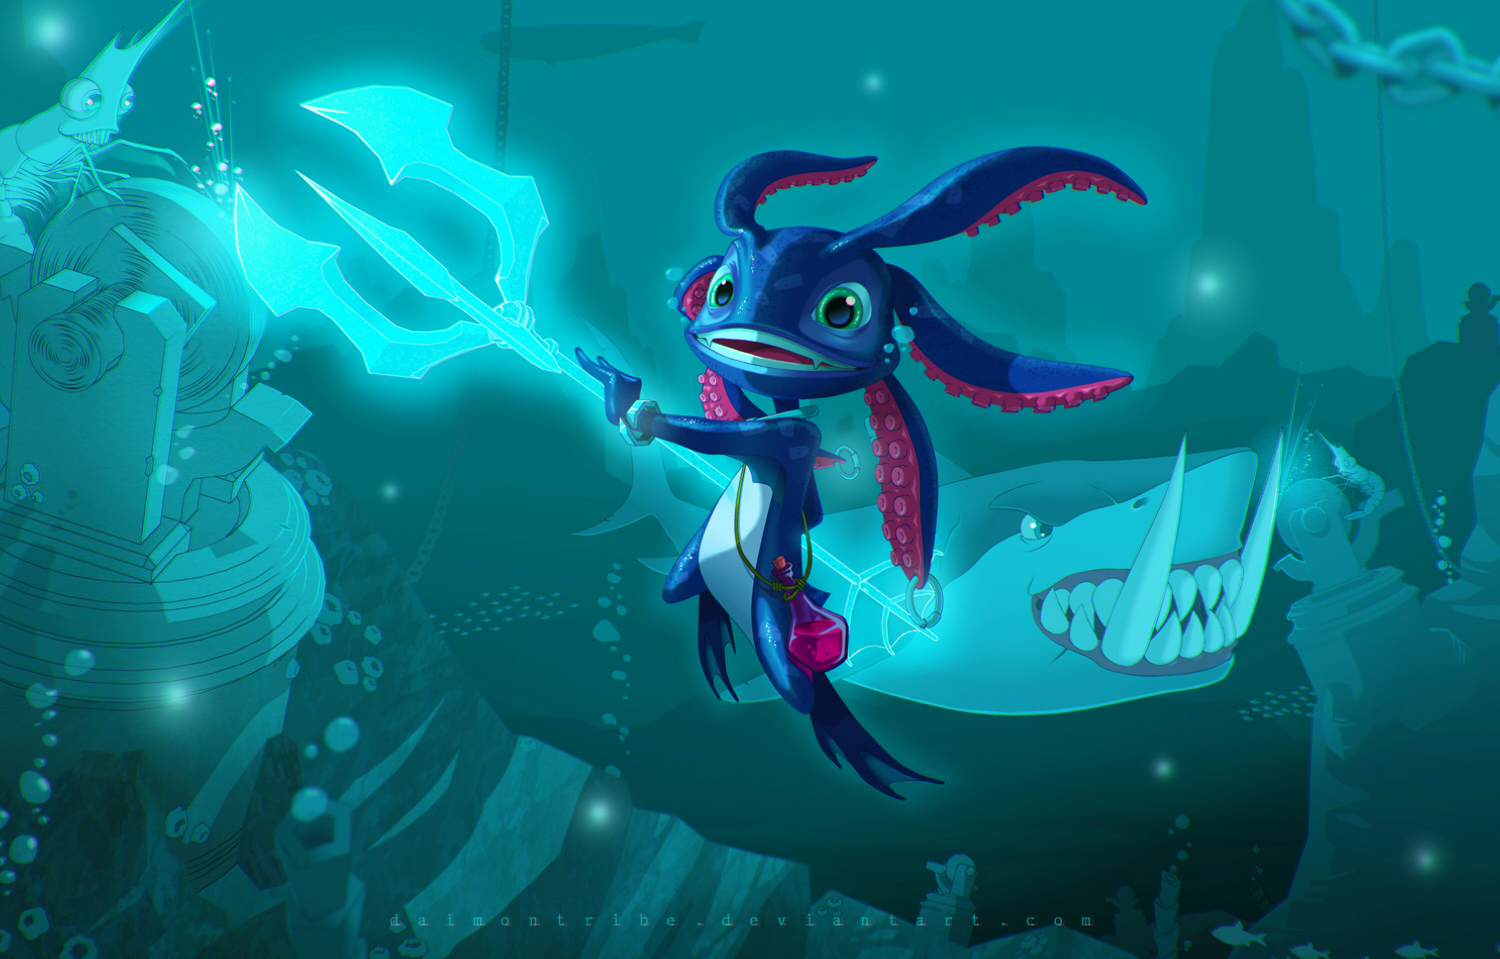 16 - League of Legends - Fizz